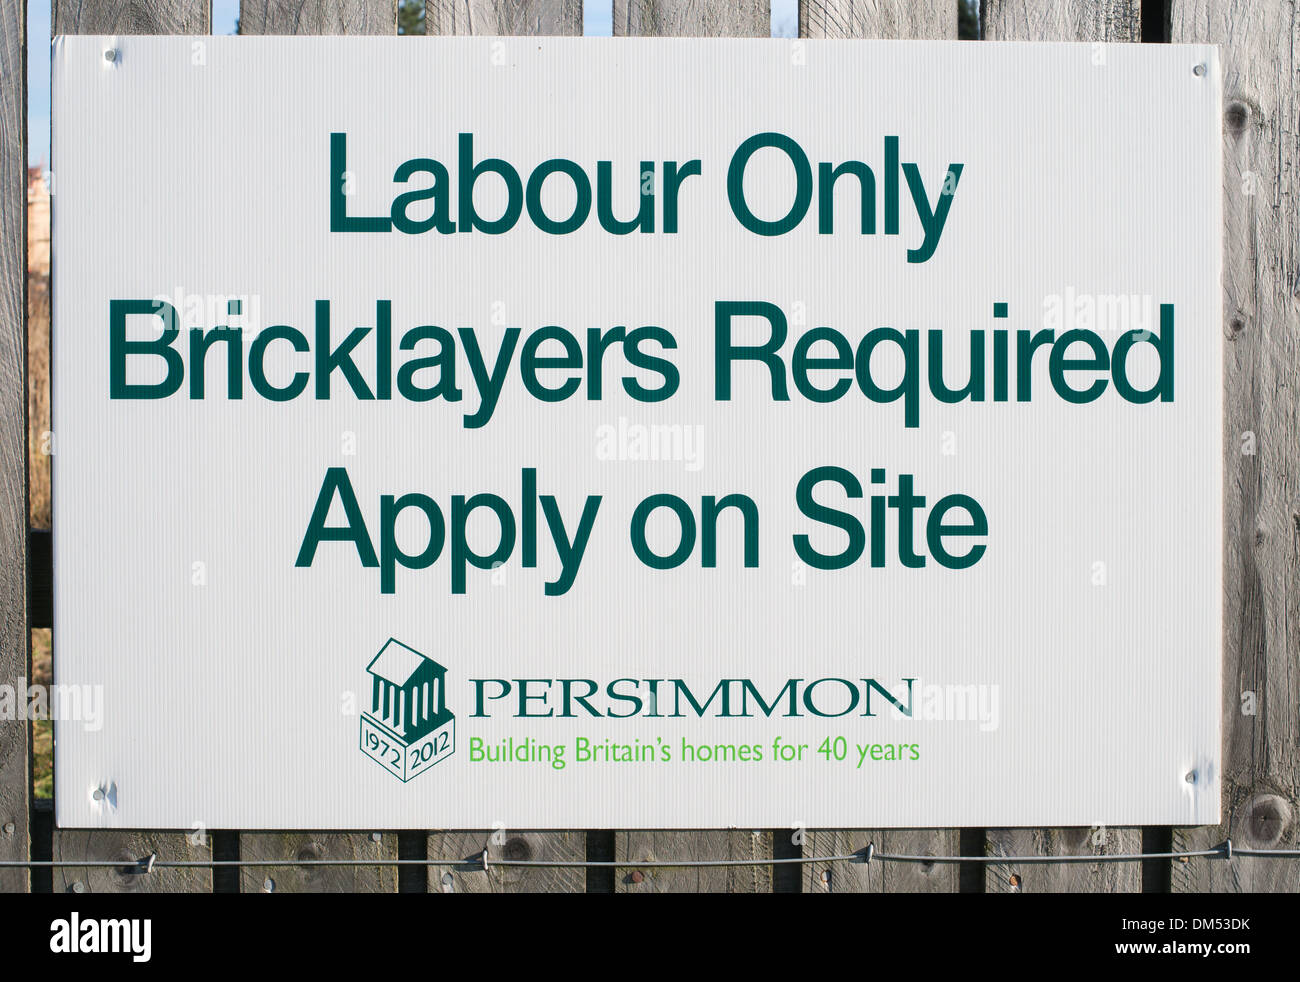 Notice or sign Bricklayers Required, north east England, UK - Stock Image